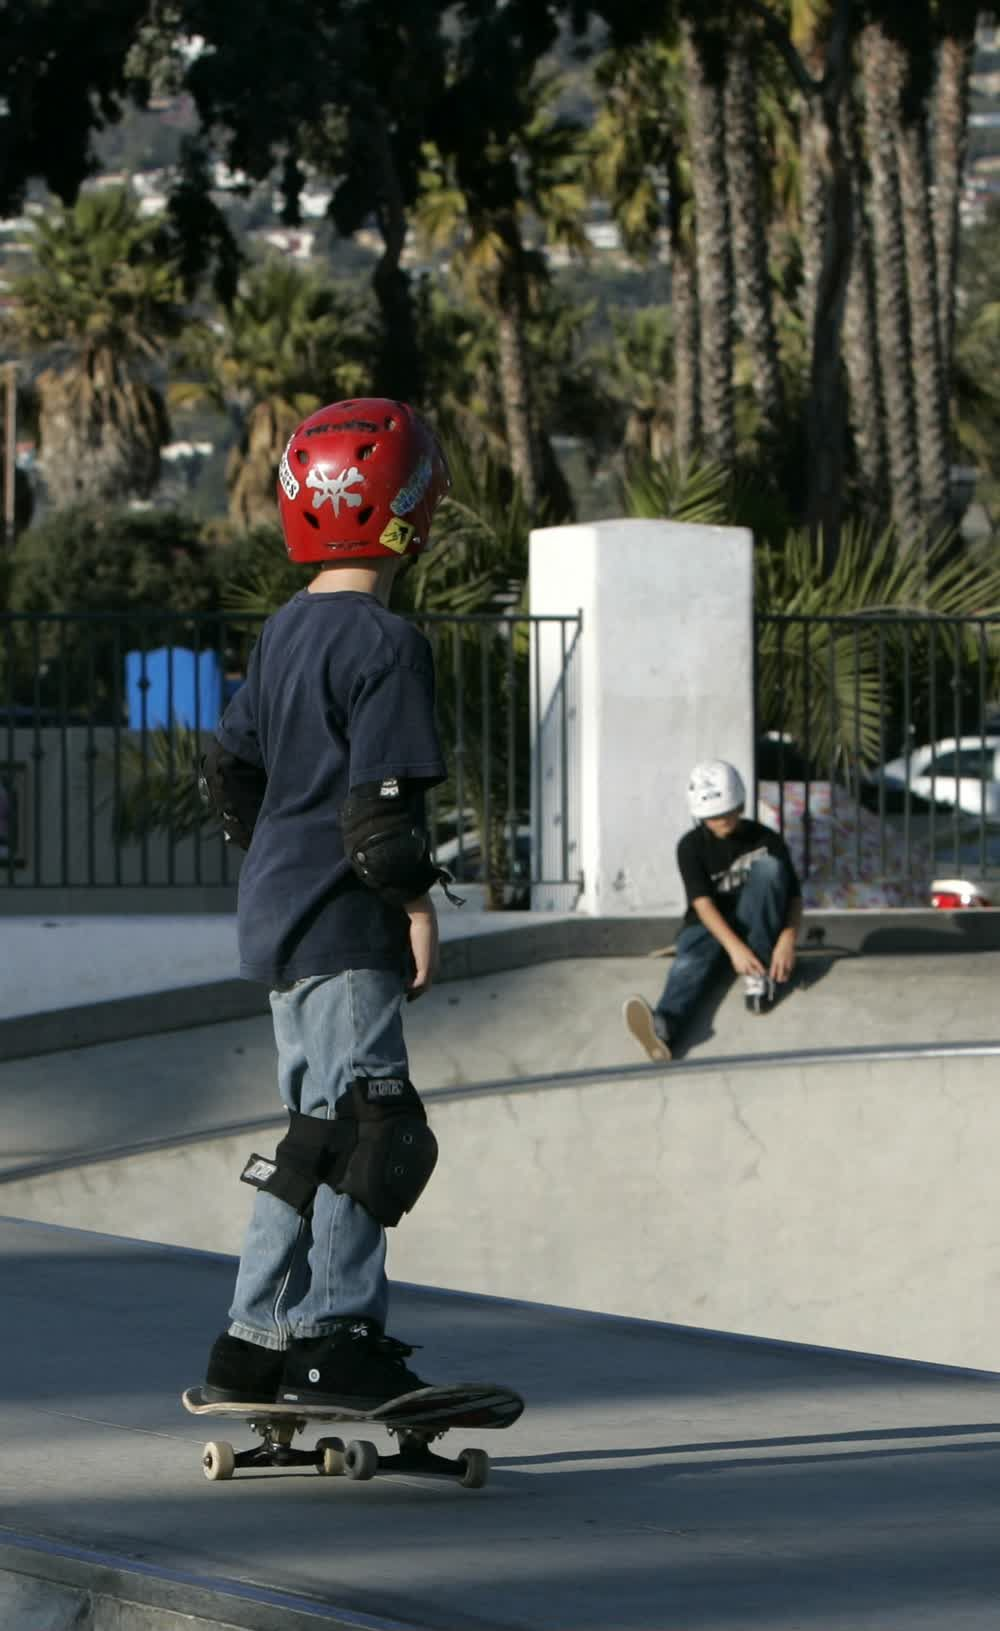 title: Skate Park at Santa Barbara